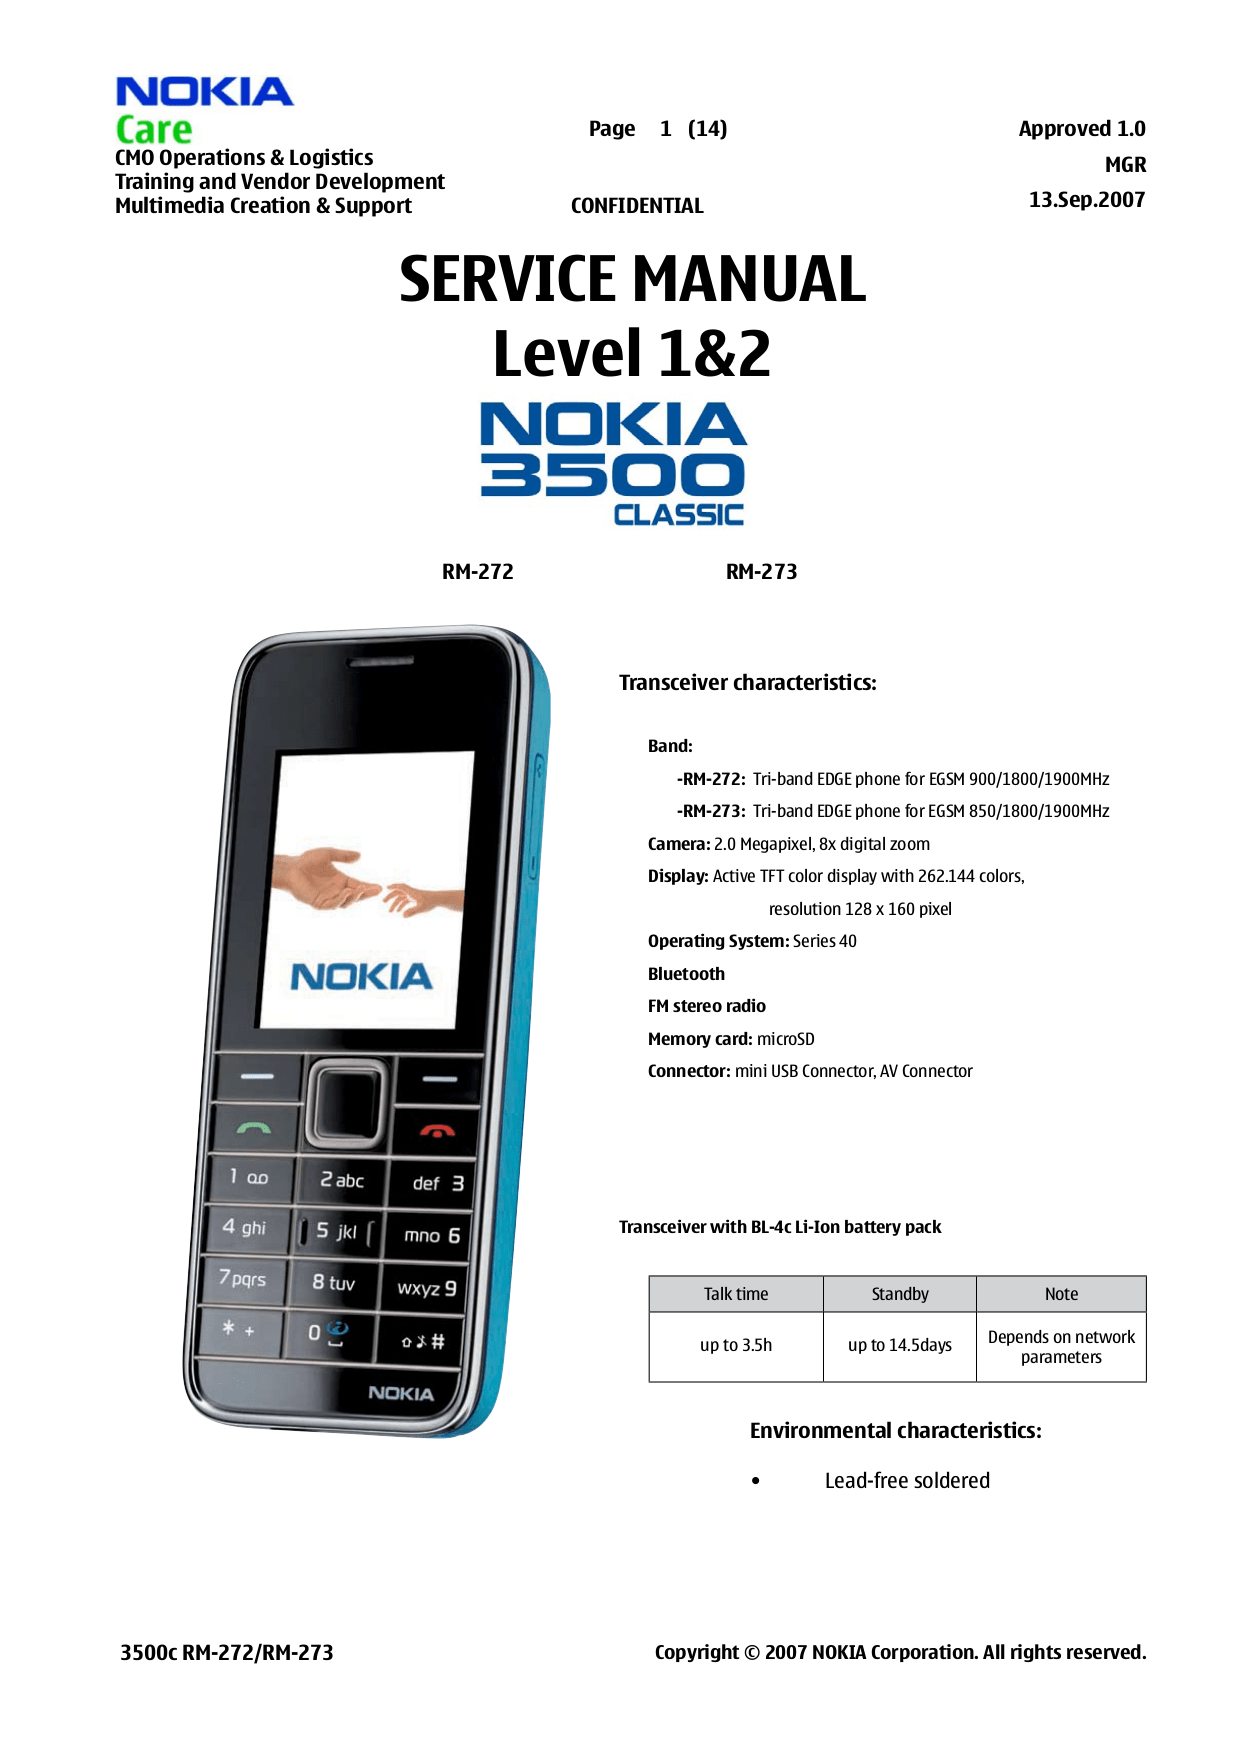 Download free pdf for Nokia 3500 Cell Phone manual